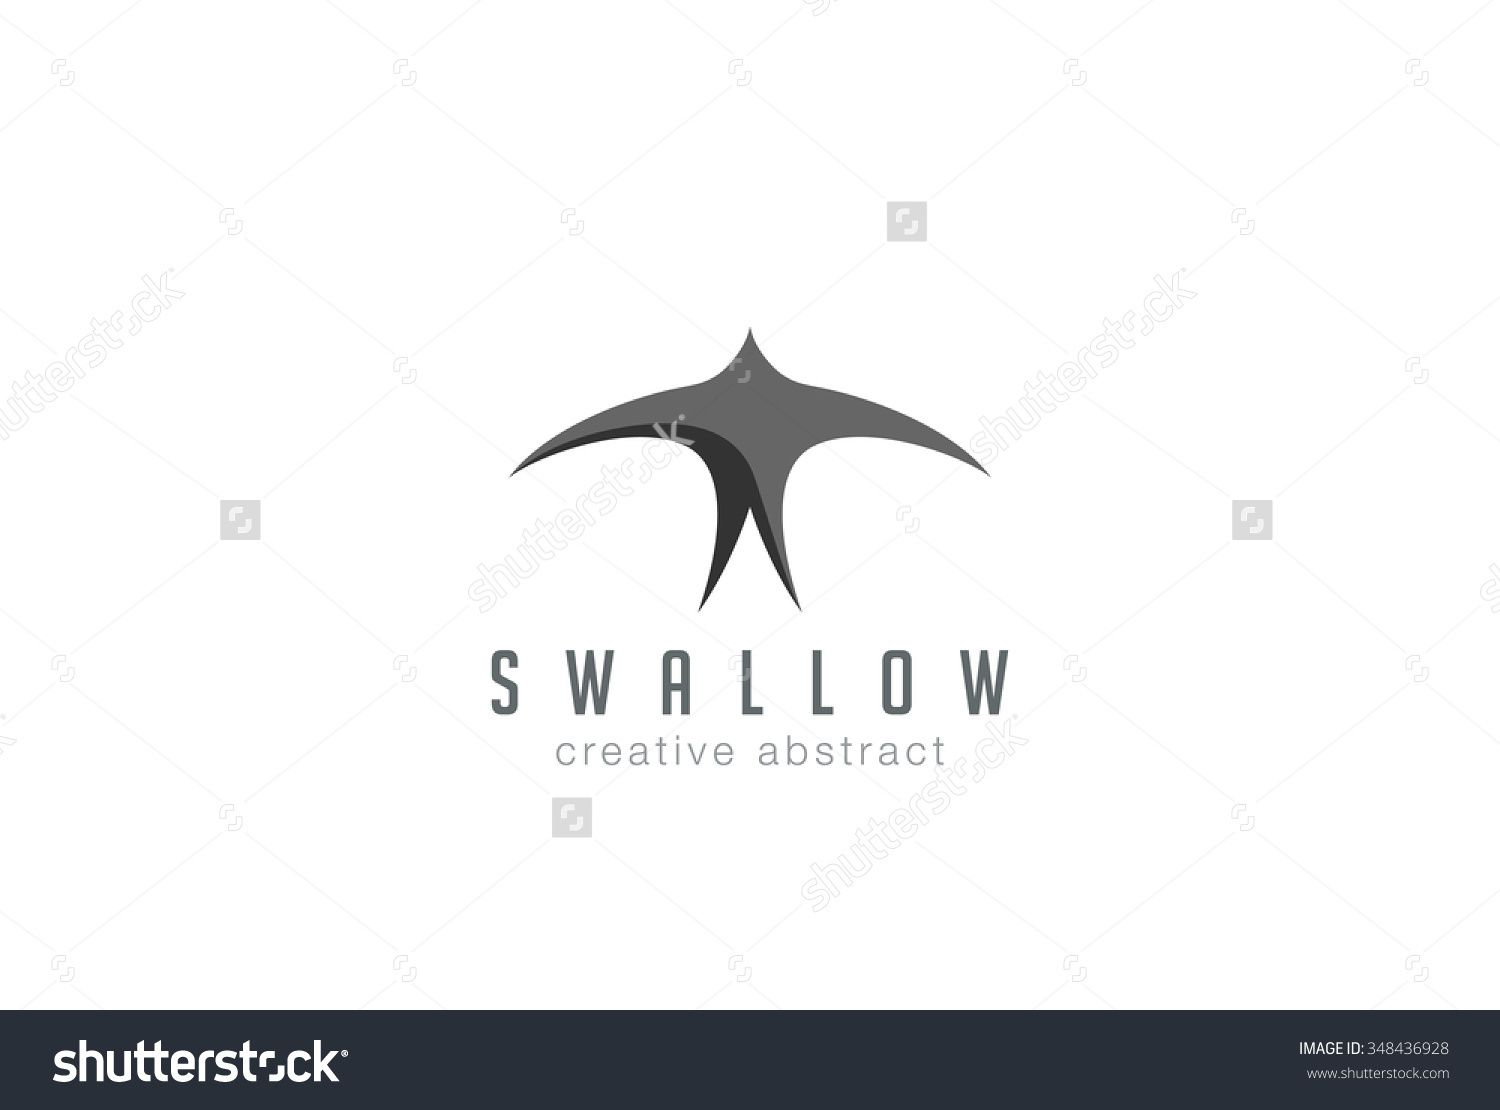 swallow logo abstract design vector template black flying bird bird logo design abstract design bird logos pinterest